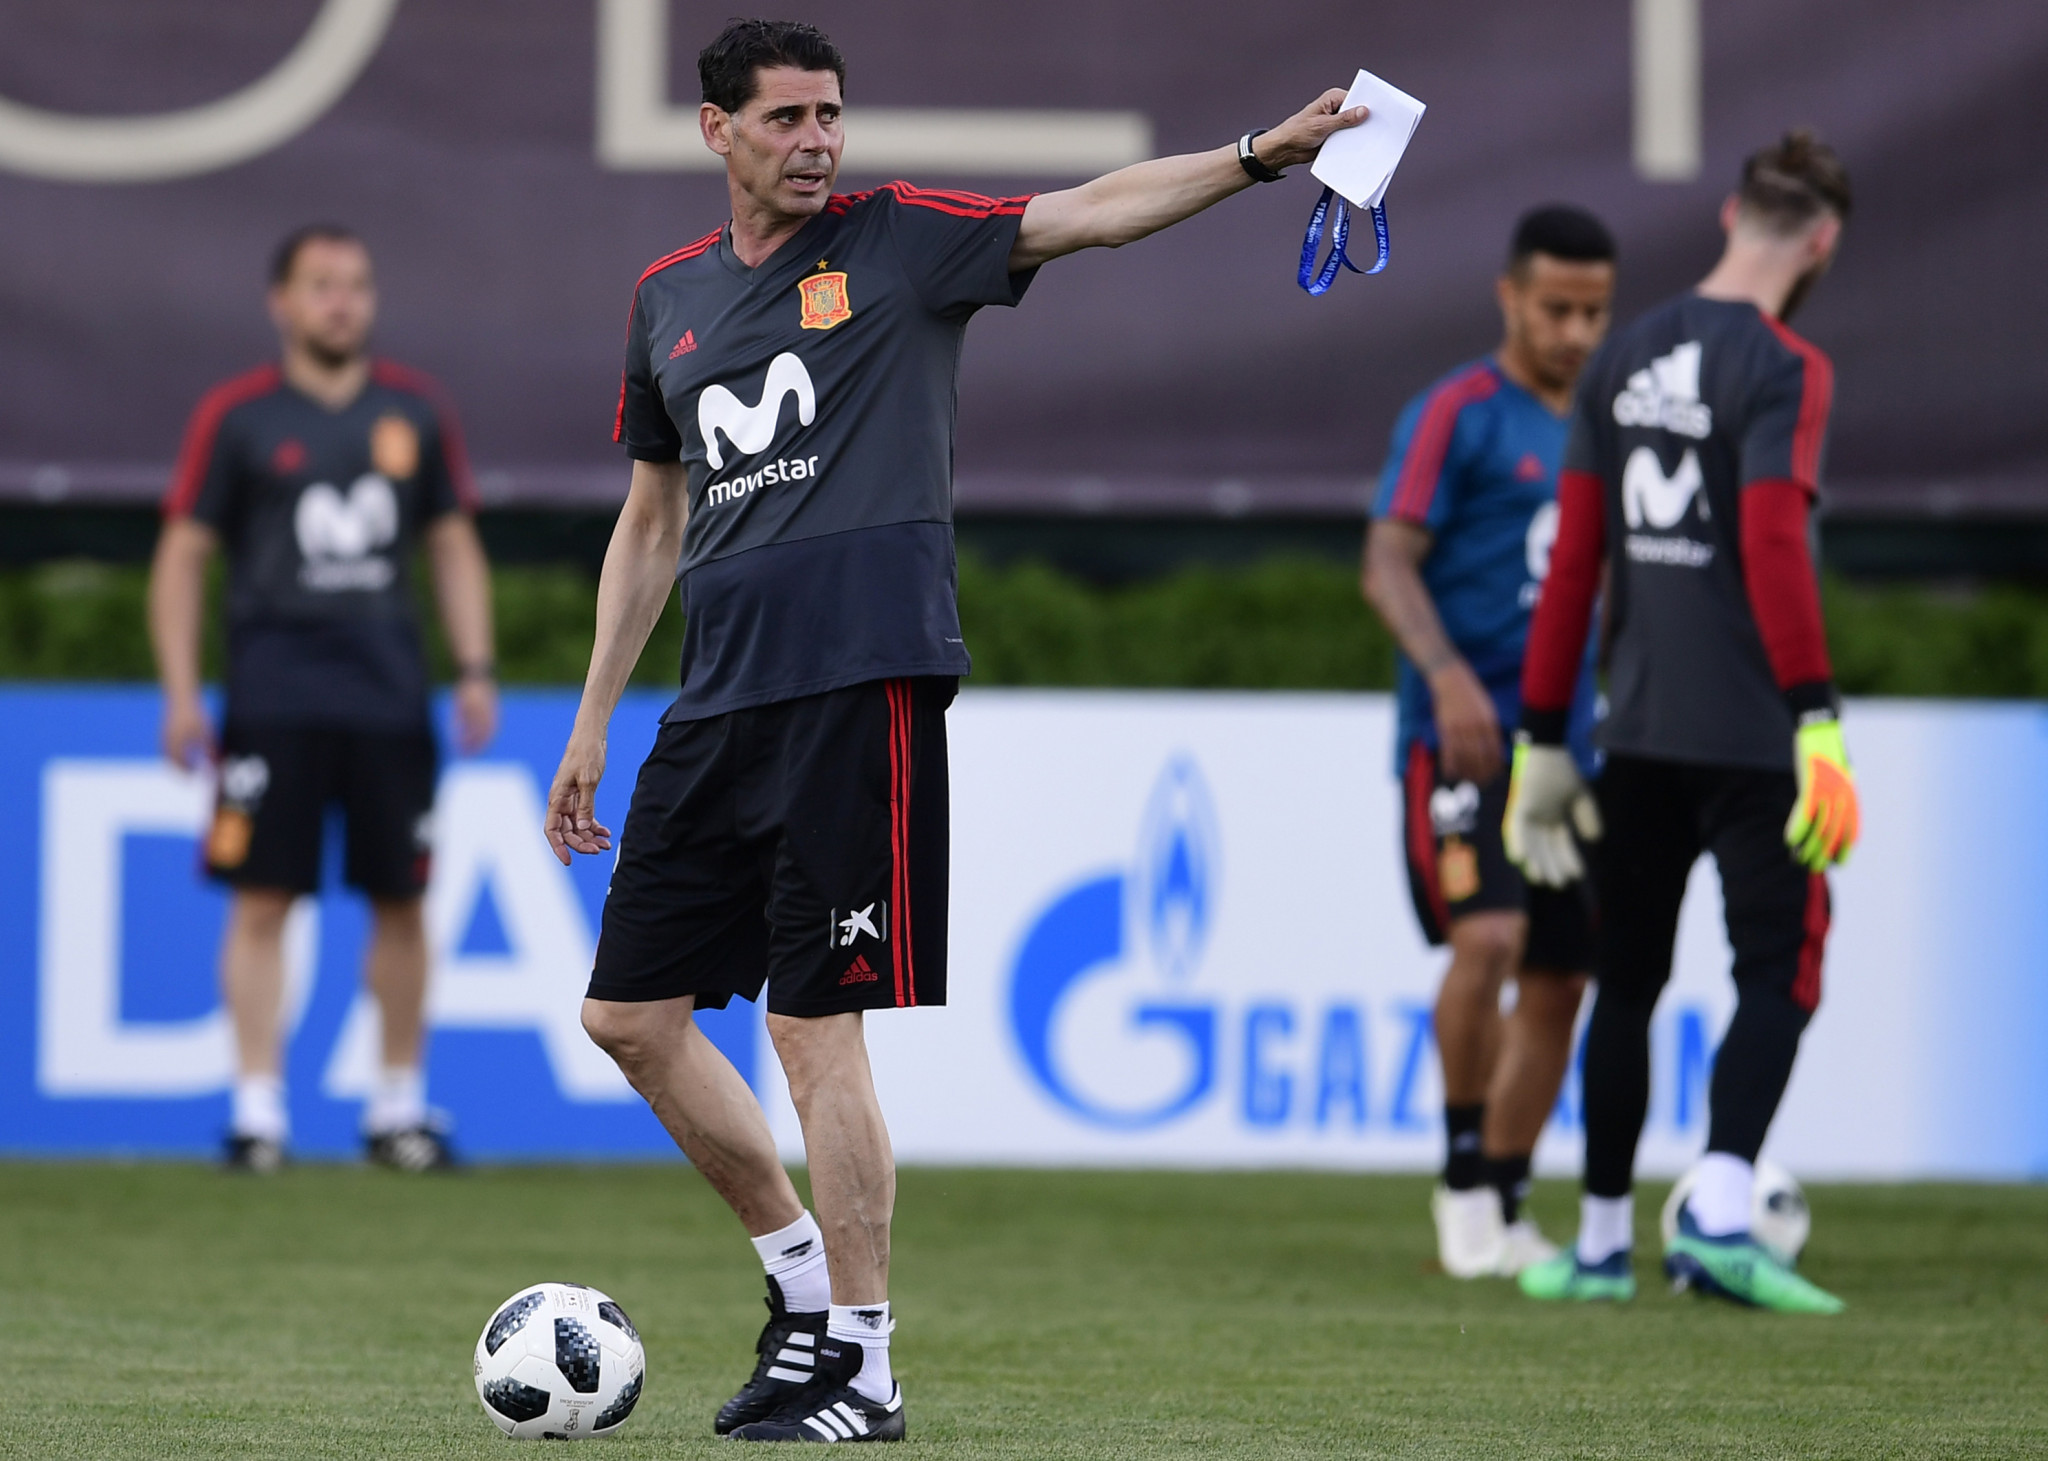 Stand-in coach Fernando Hierro directs training as Spain's players prepare for their opening World Cup match against Portugal in Sochi tomorrow ©Getty Images